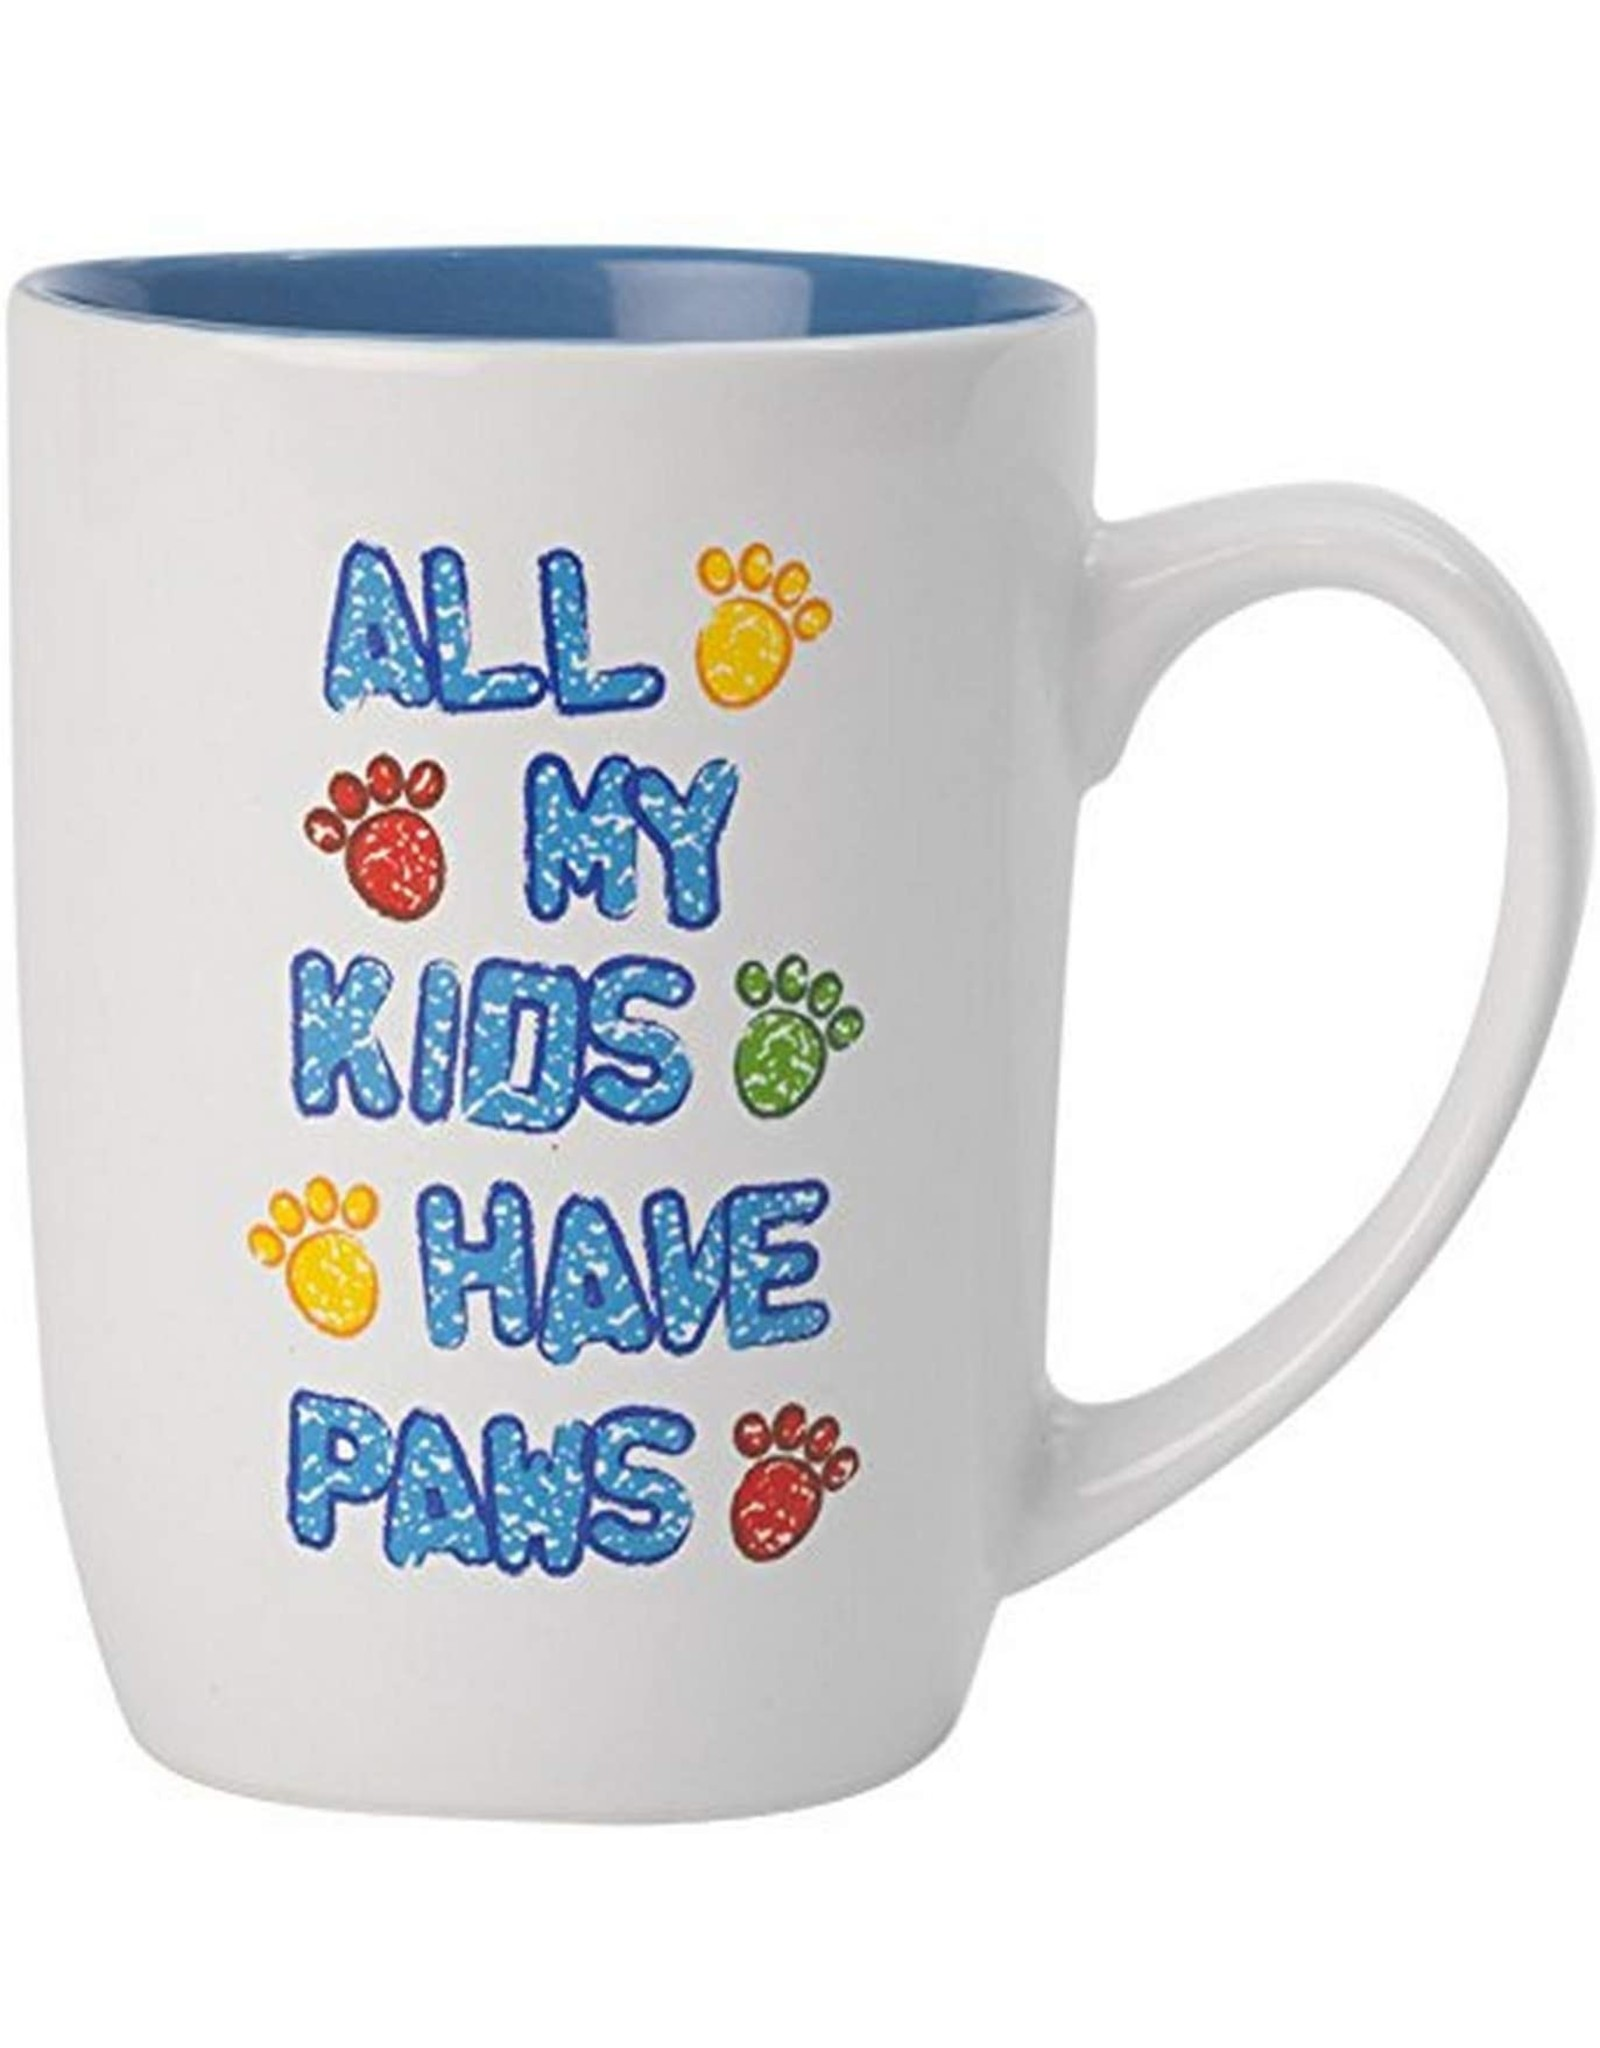 Petrageous All My Kids Have Paws Mug 24oz